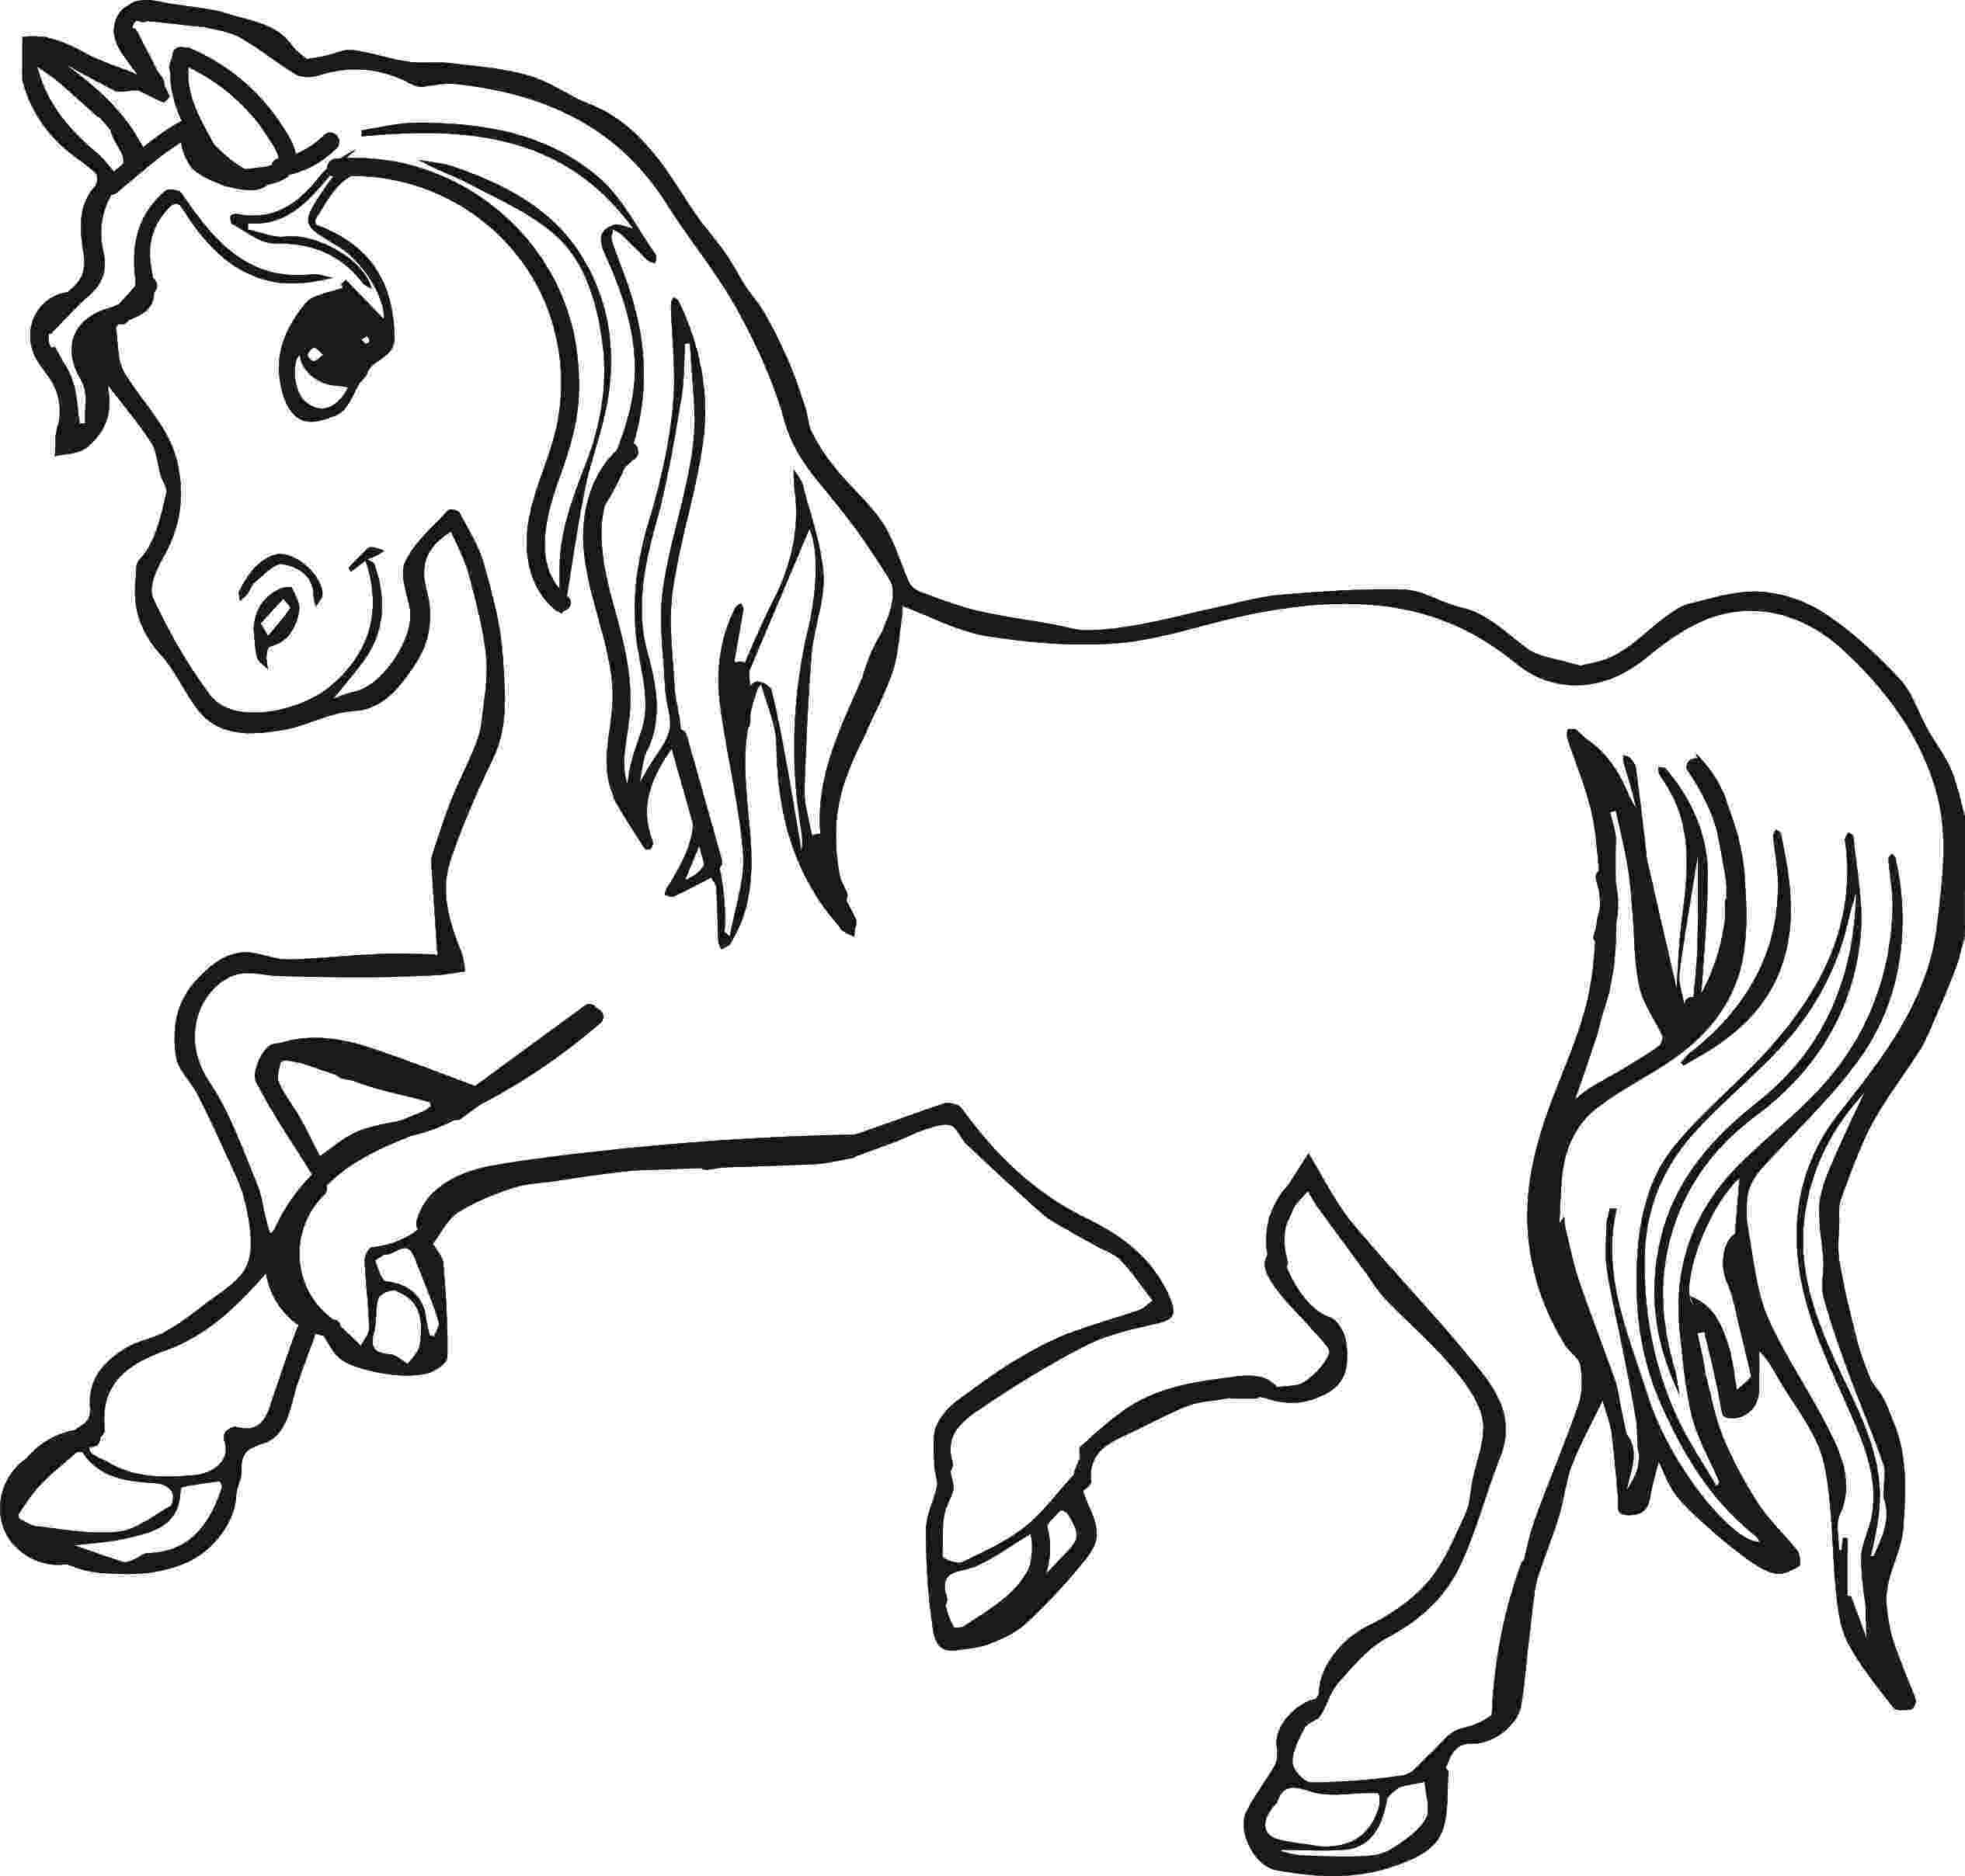 coloring pages horses horse coloring pages to download and print for free pages horses coloring